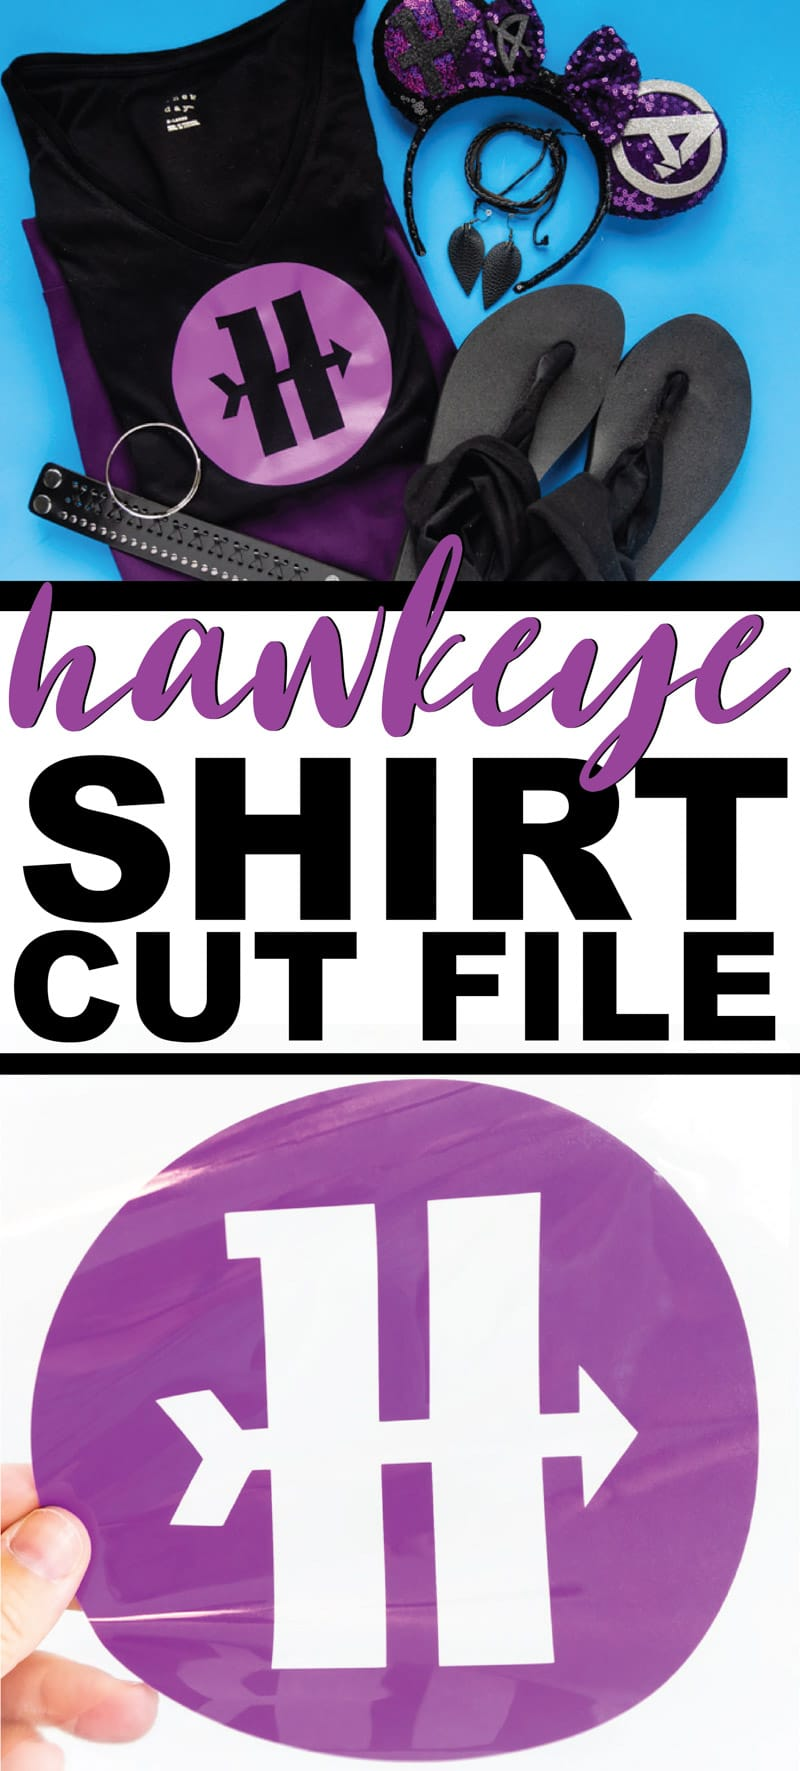 Make this easy Marvel Hawkeye shirt with the free Hawkeye symbol SVG cut file! Perfect for your very own DIY costume, Disneybounding like Hawkeye, or just supporting your favorite Marvel superhero!